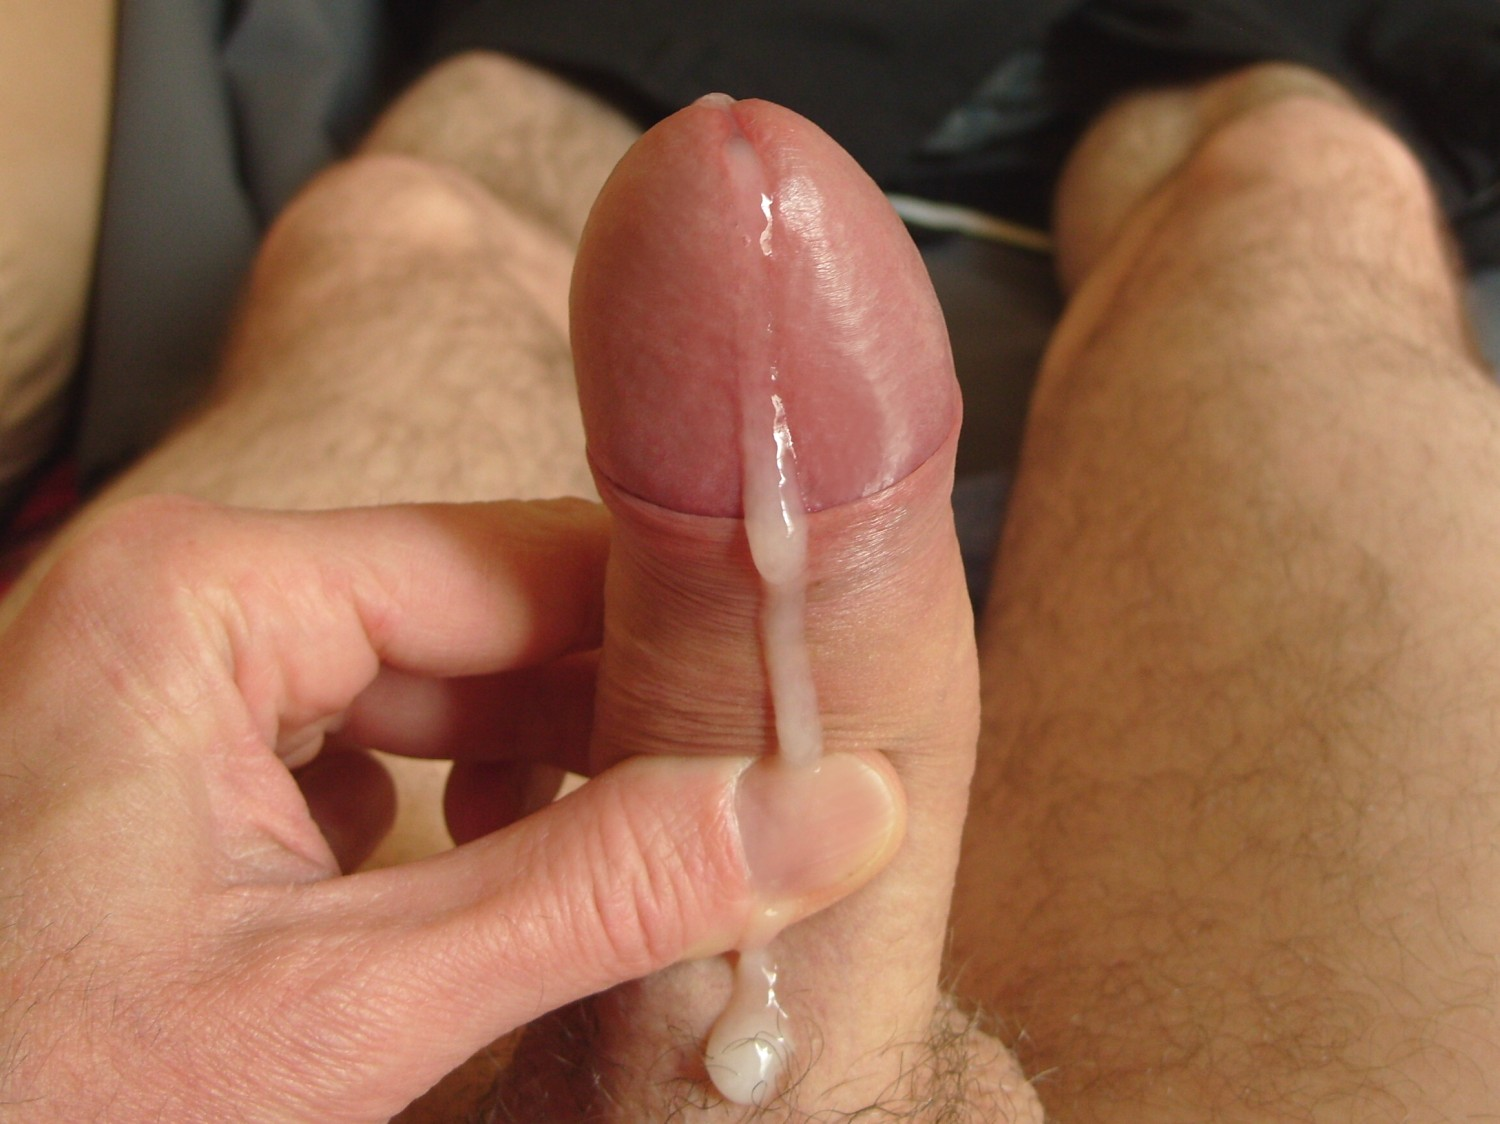 Pictures of sperm ejaculations #13